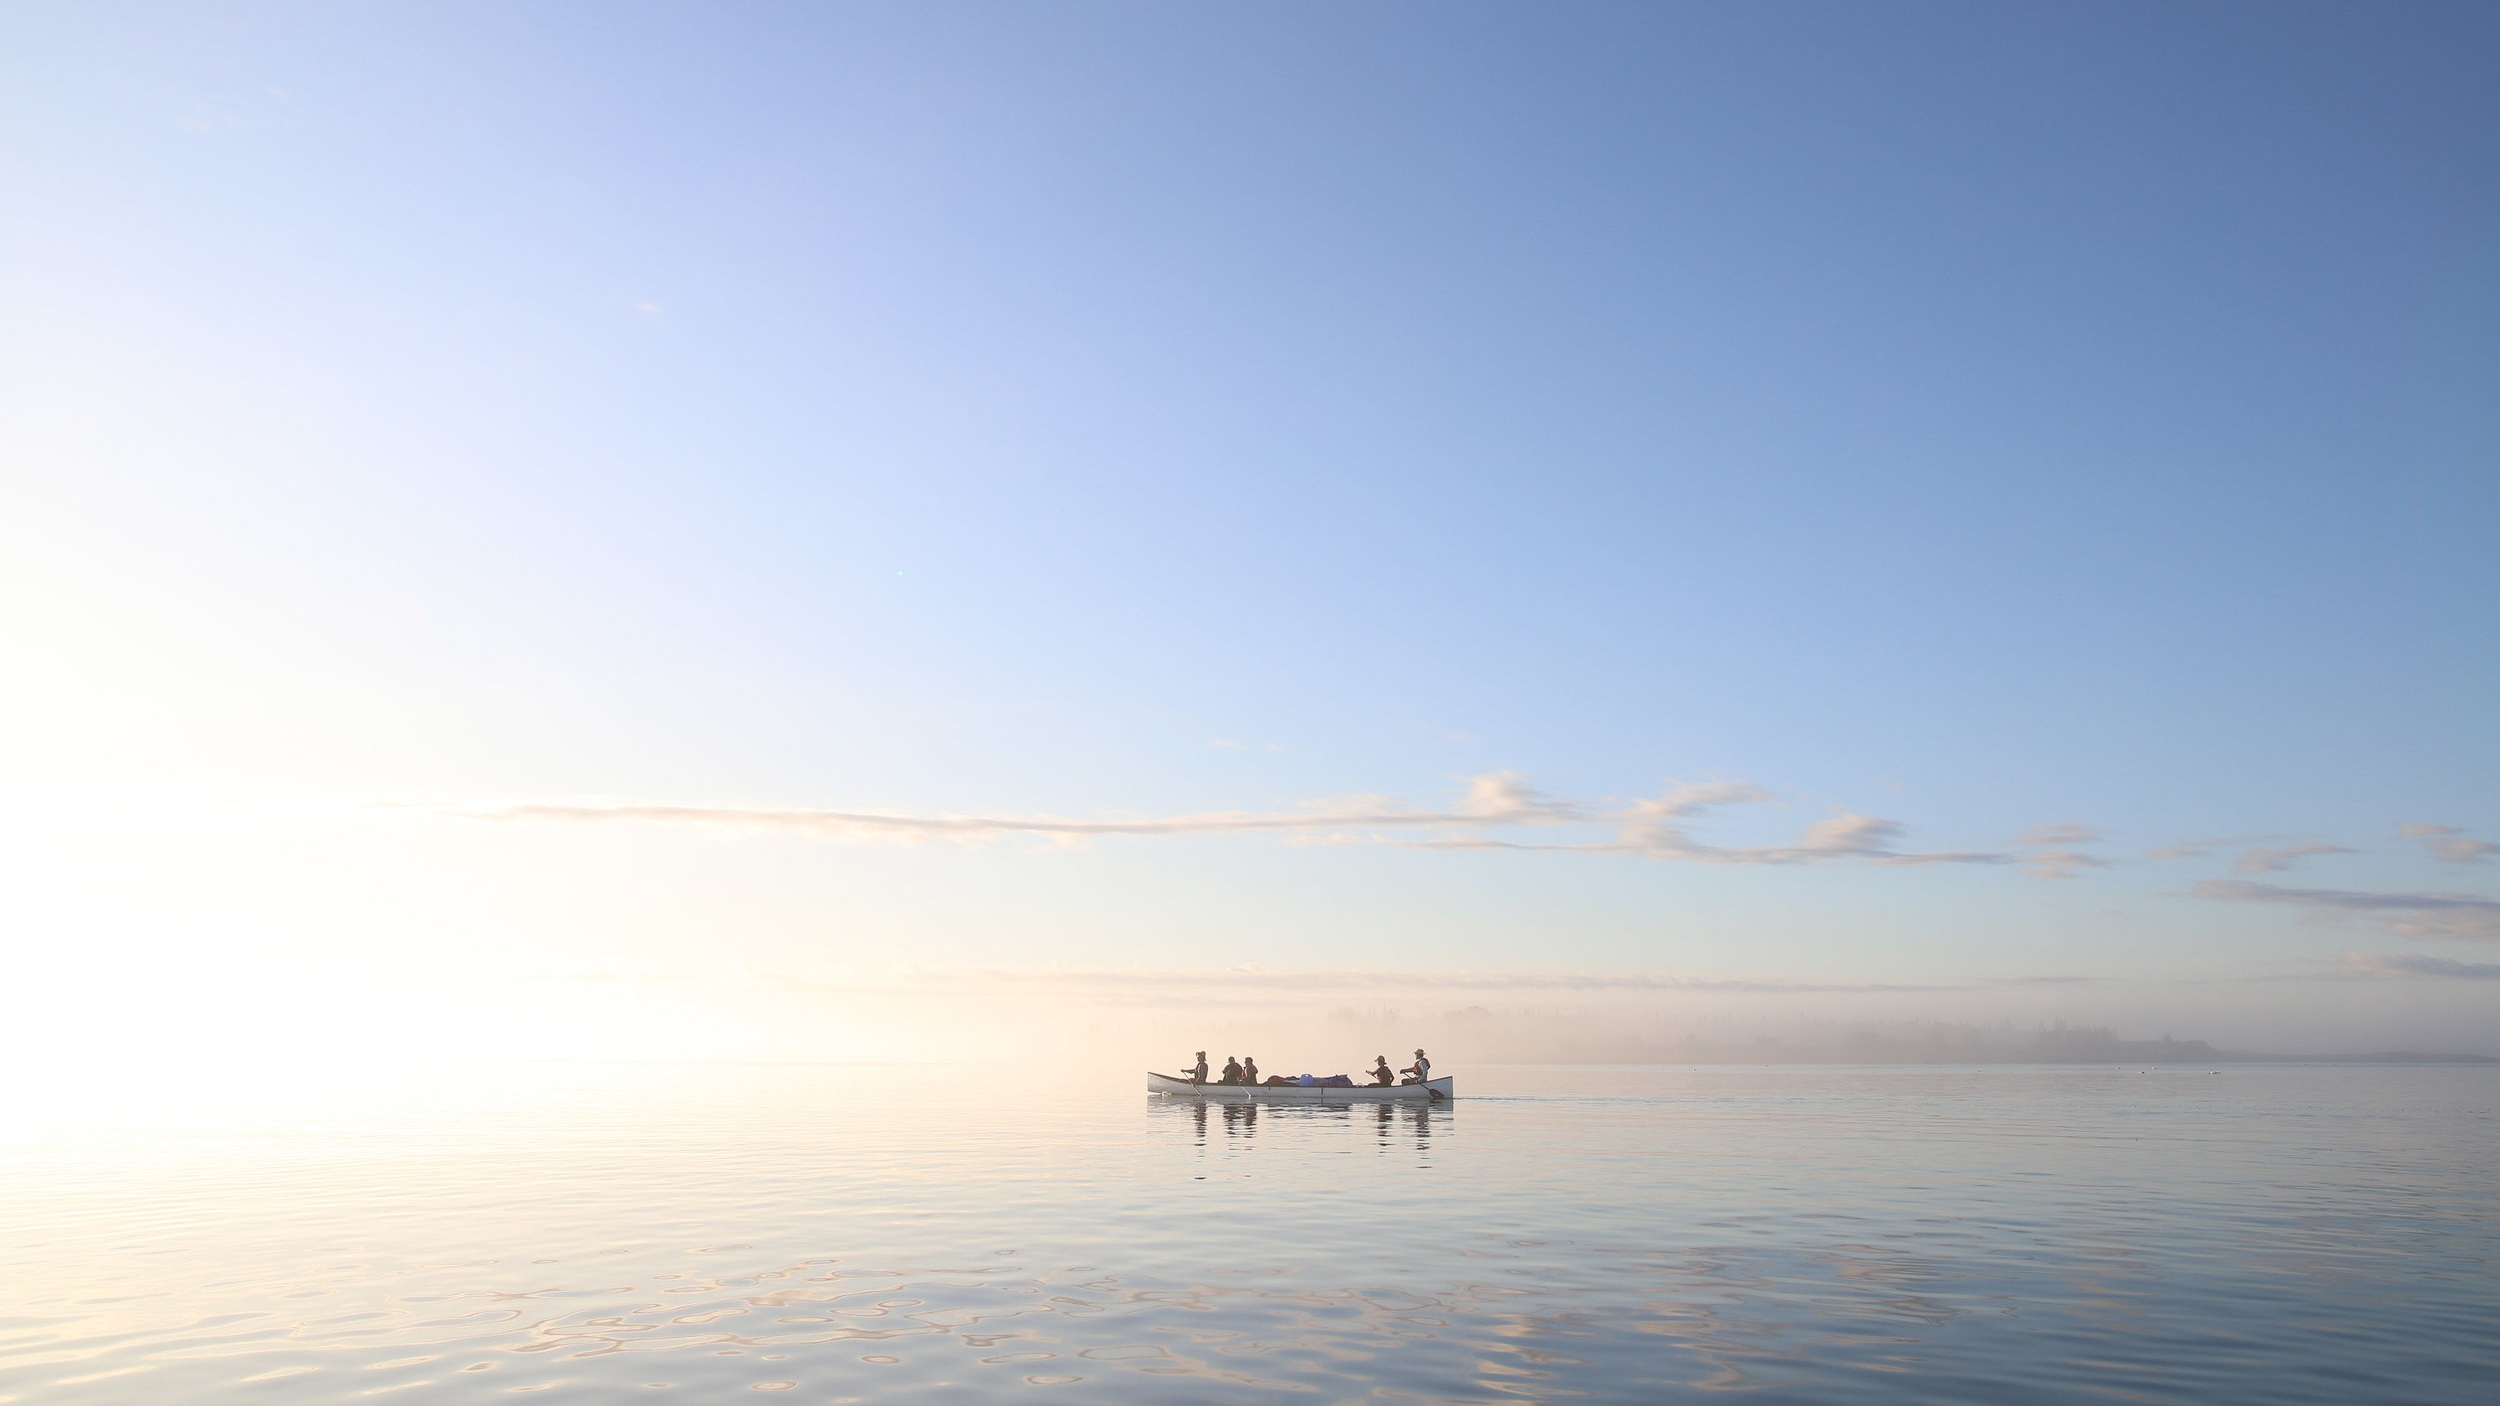 Artists paddling the 31' canoe (built by Mike Maybury) in early morning on Penobscot Bay.  Photo: Brian Wasser